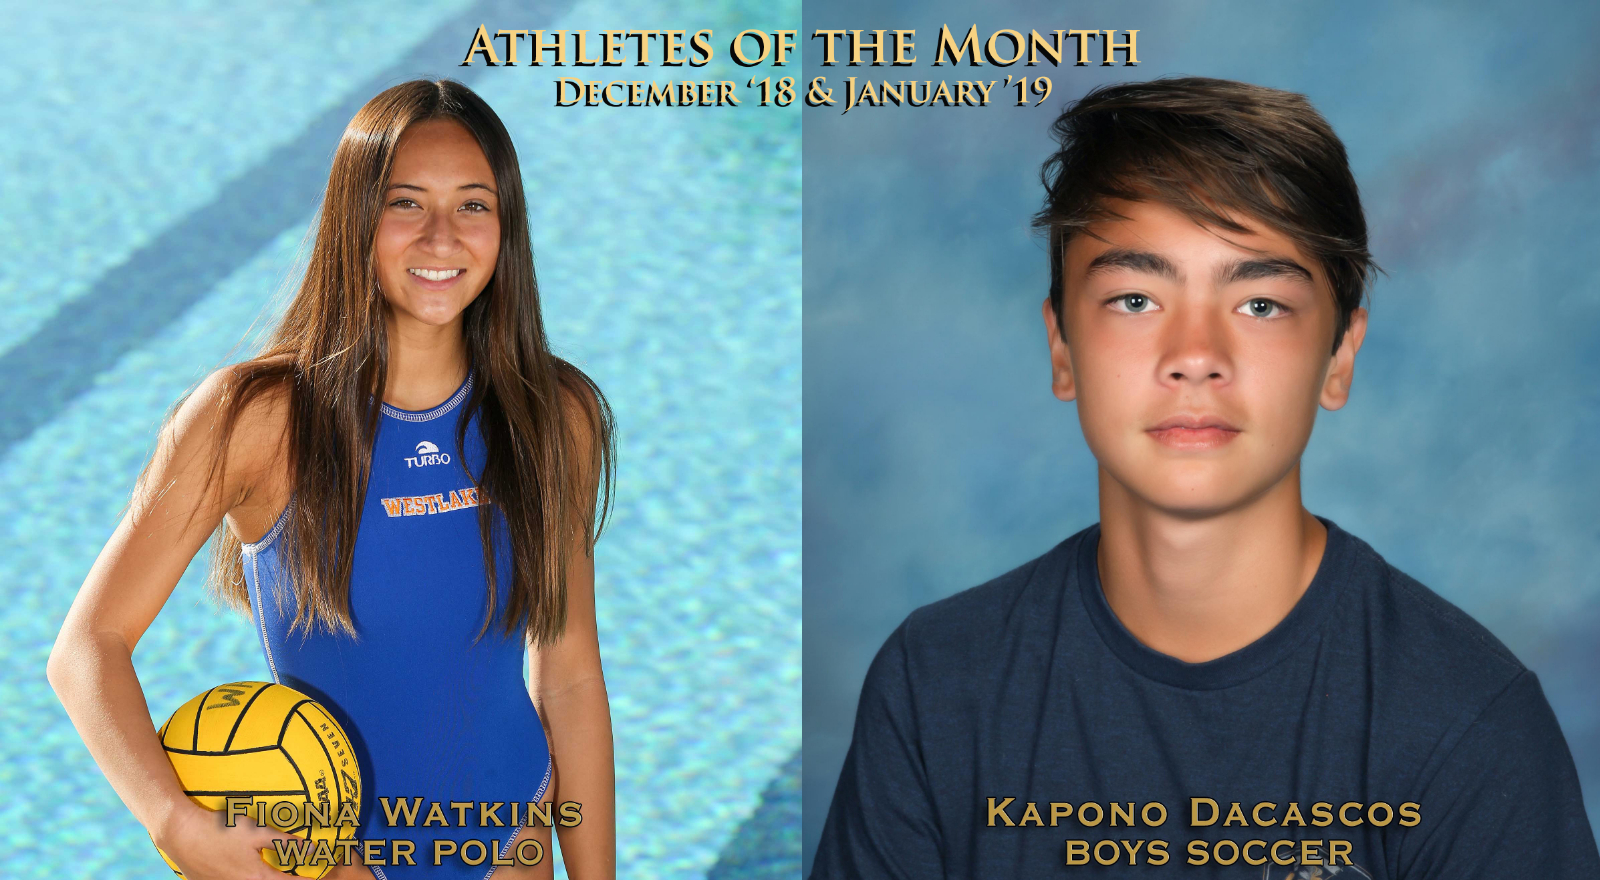 Watkins and Dacoscos Named Athletes of the Month